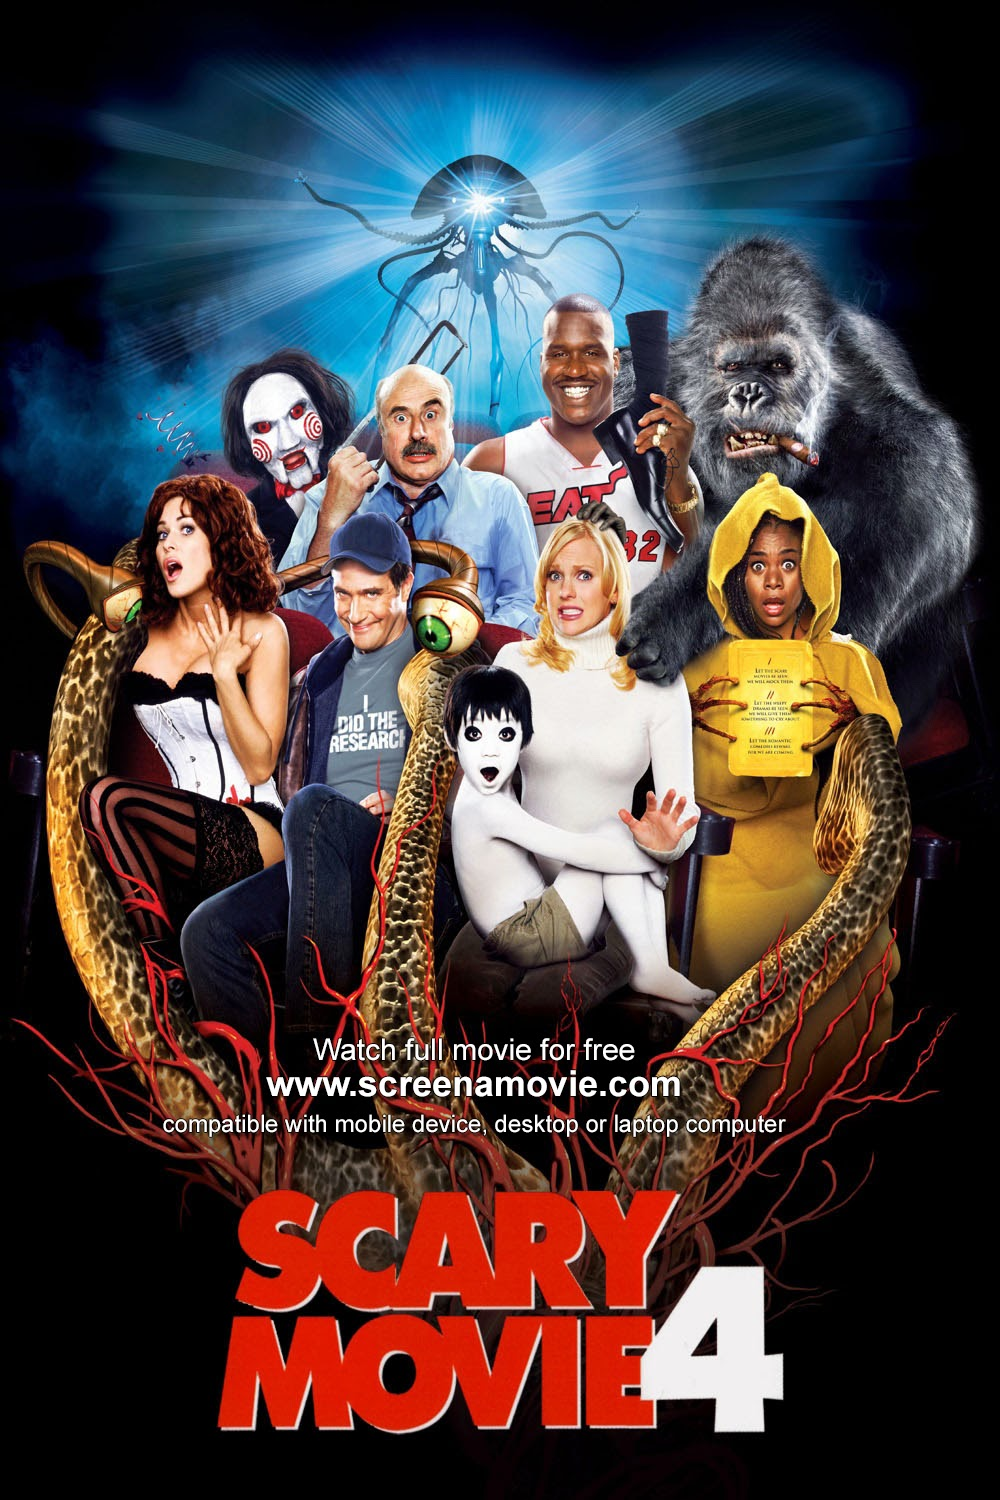 Scary Movie 4_@screenamovie